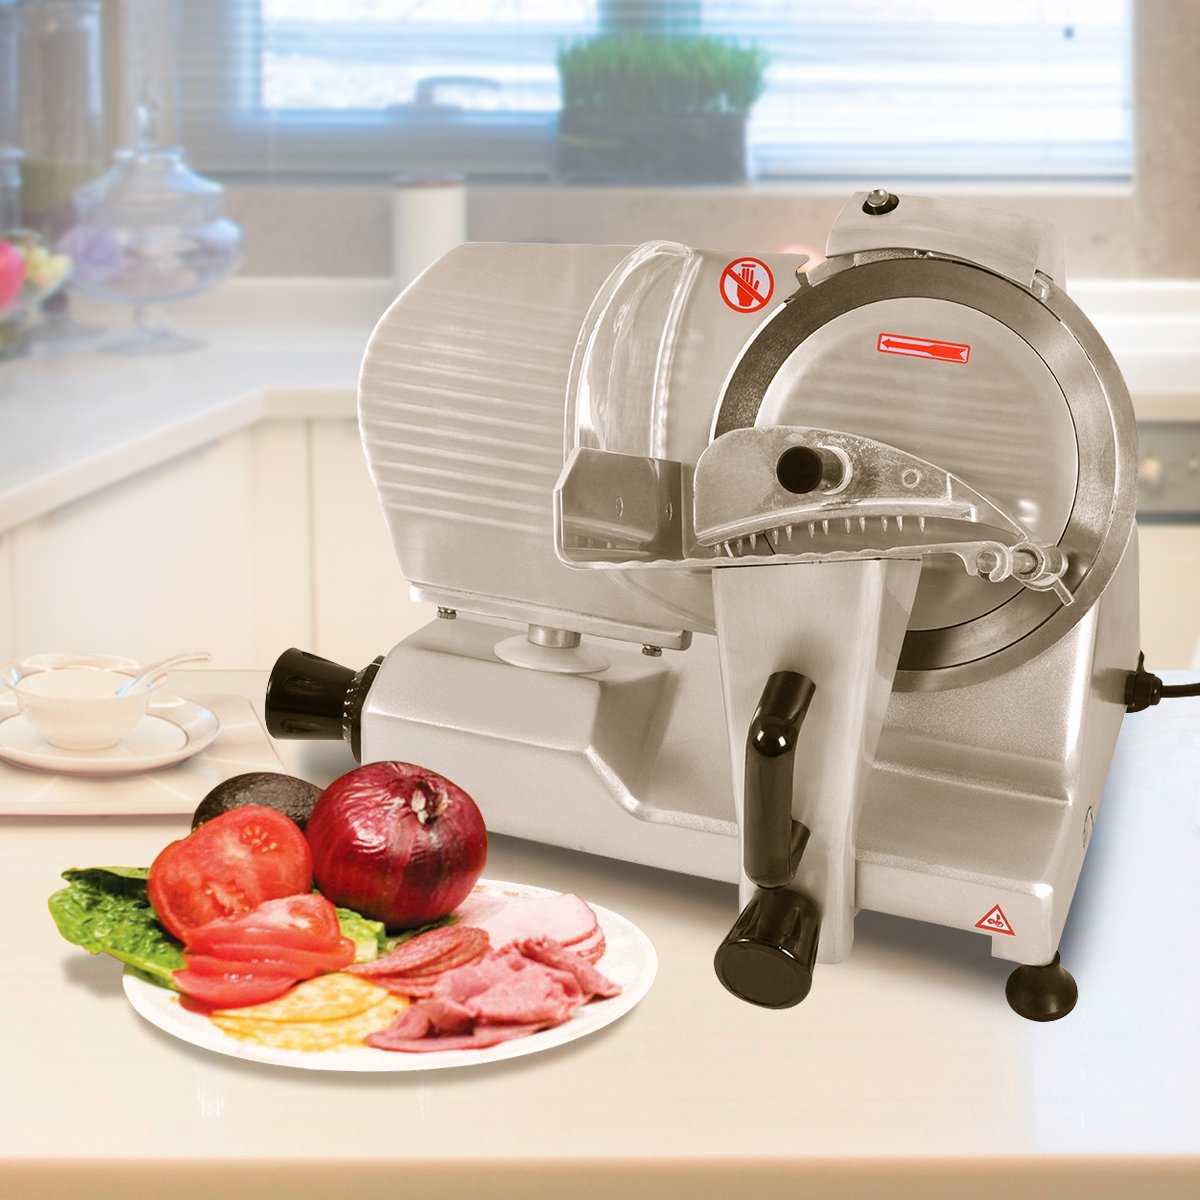 Tangkula 9'' Blade Commercial Meat Slicer Deli Meat Cheese Food Slicer